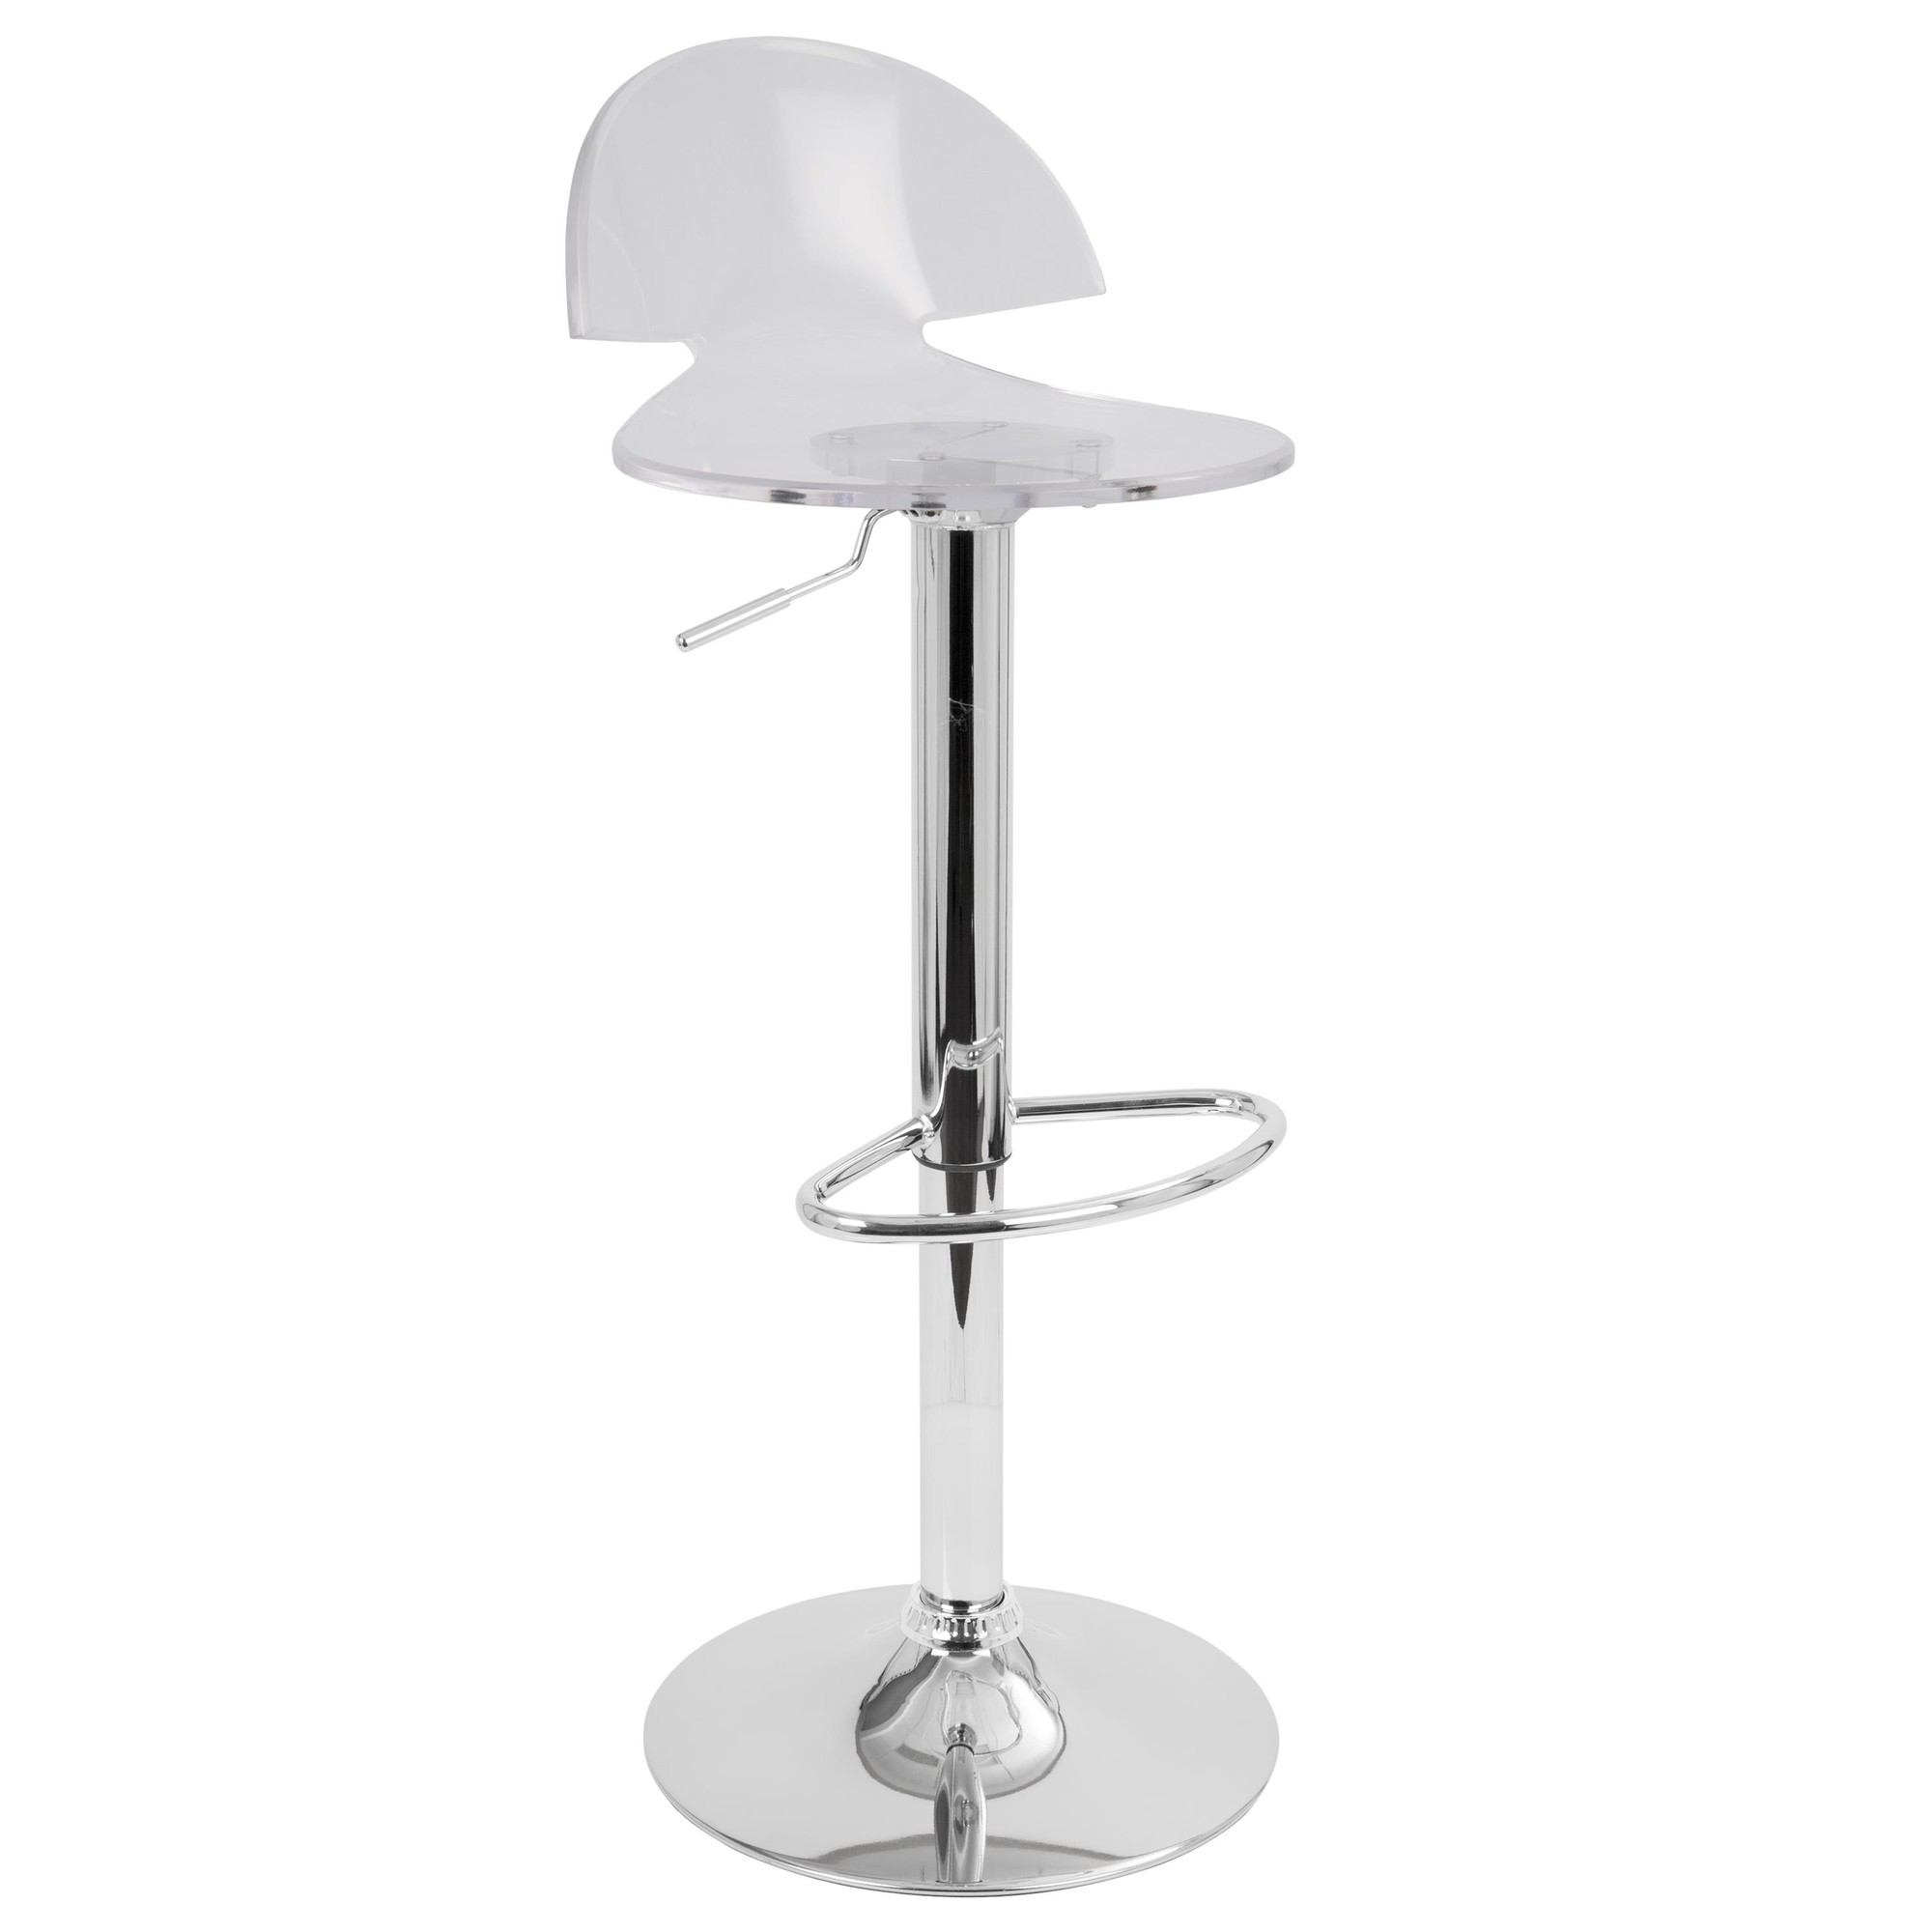 Outstanding Venti Barstool Lumisource Stylish Decor At Affordable Prices Evergreenethics Interior Chair Design Evergreenethicsorg